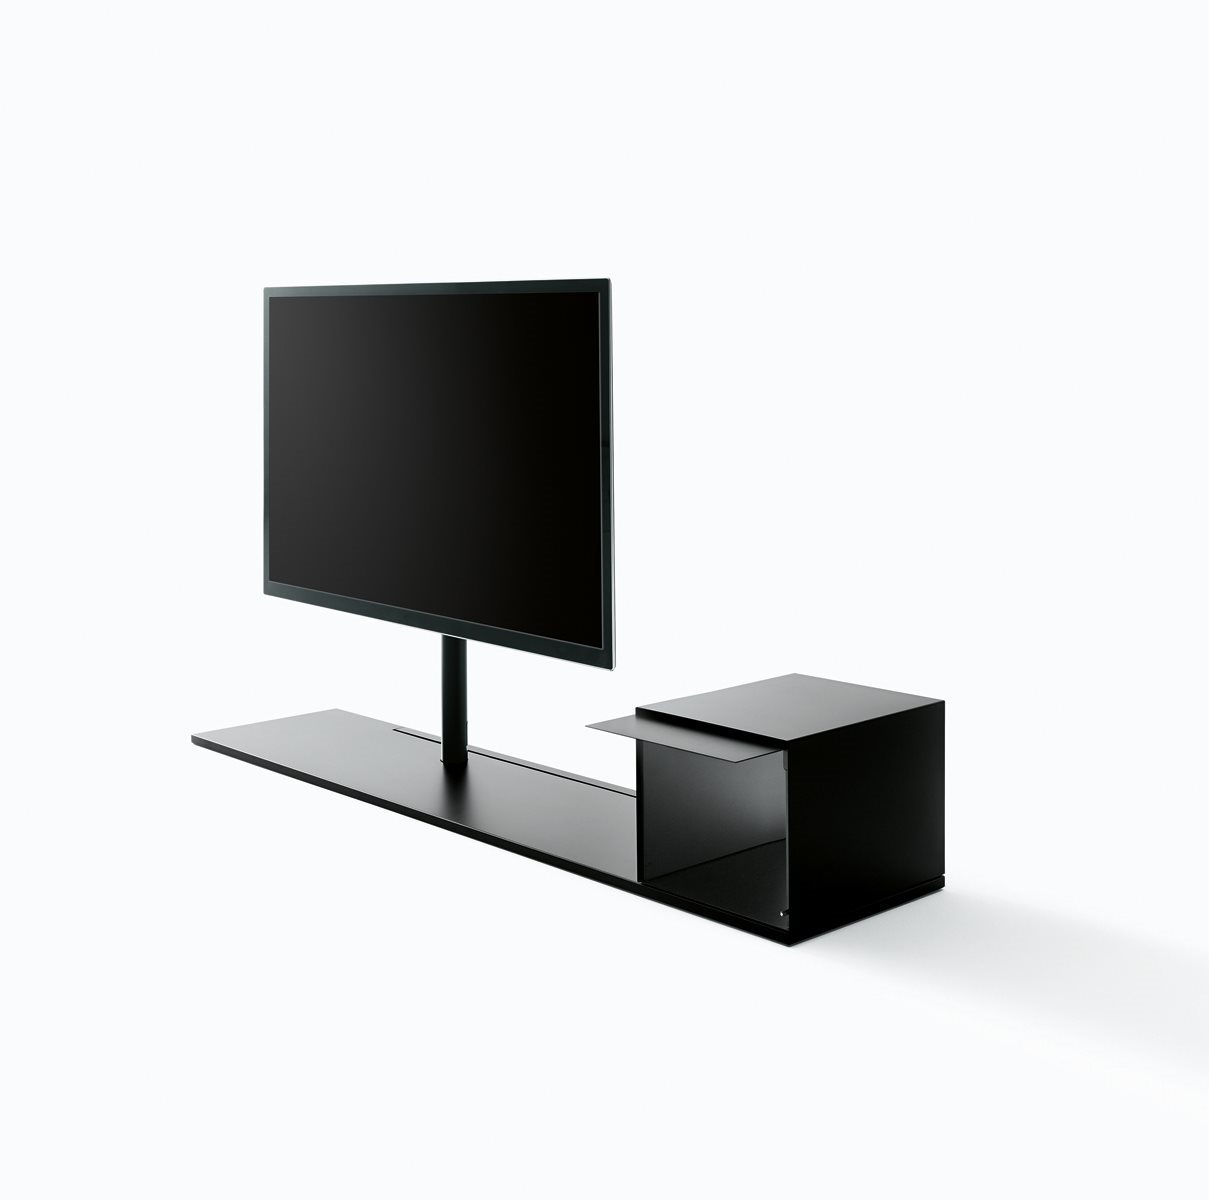 Sail 302 TV Stand System B05, H 94cm, No Shelf, W 190cm, Left TV Positioning, B59 Matt Black thumbnail